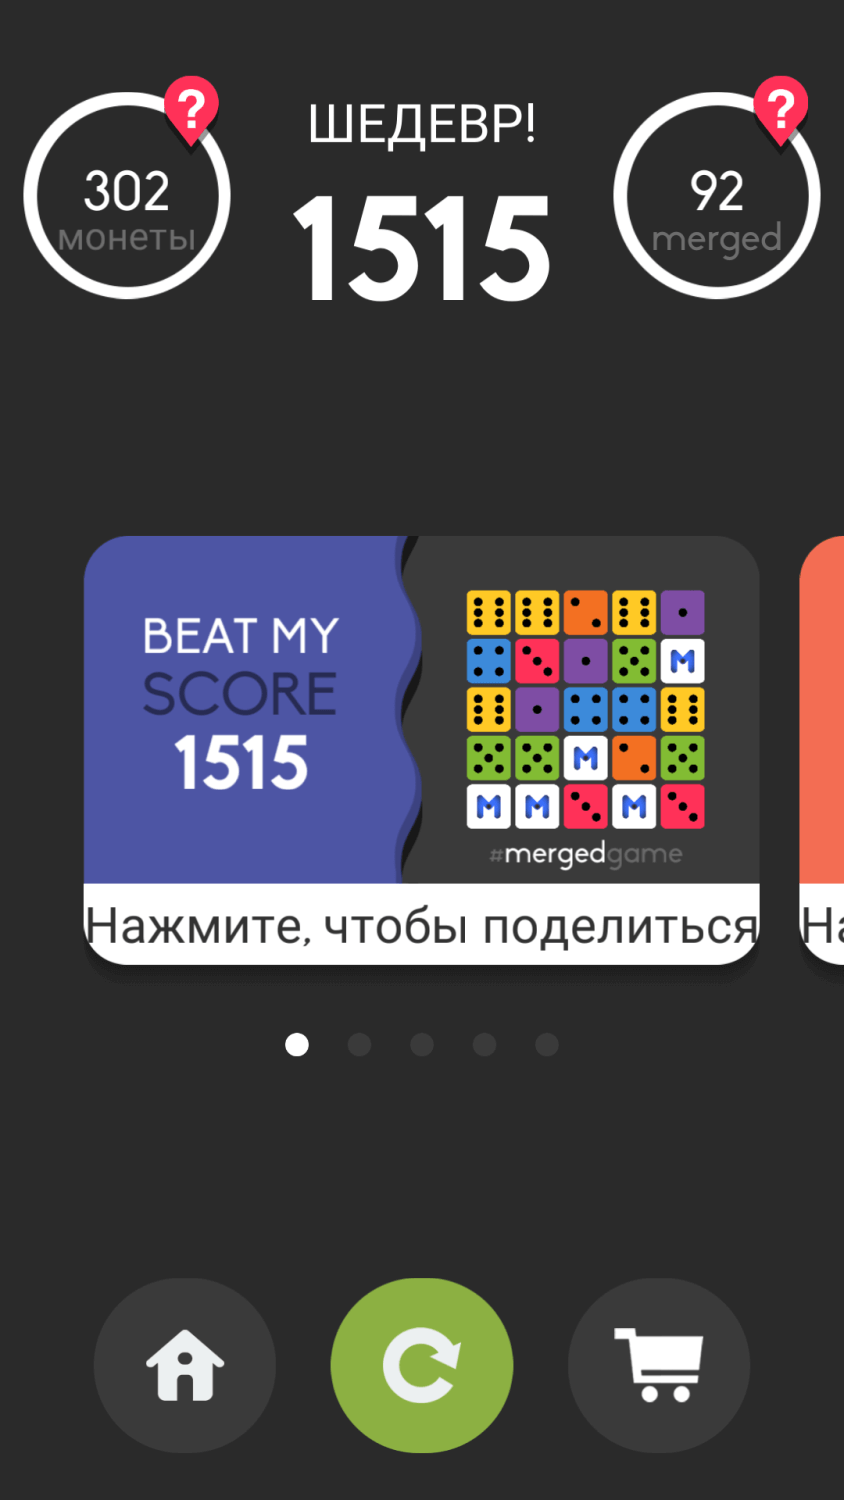 Screenshot_2016-02-19-14-44-25_com.gramgames.merged